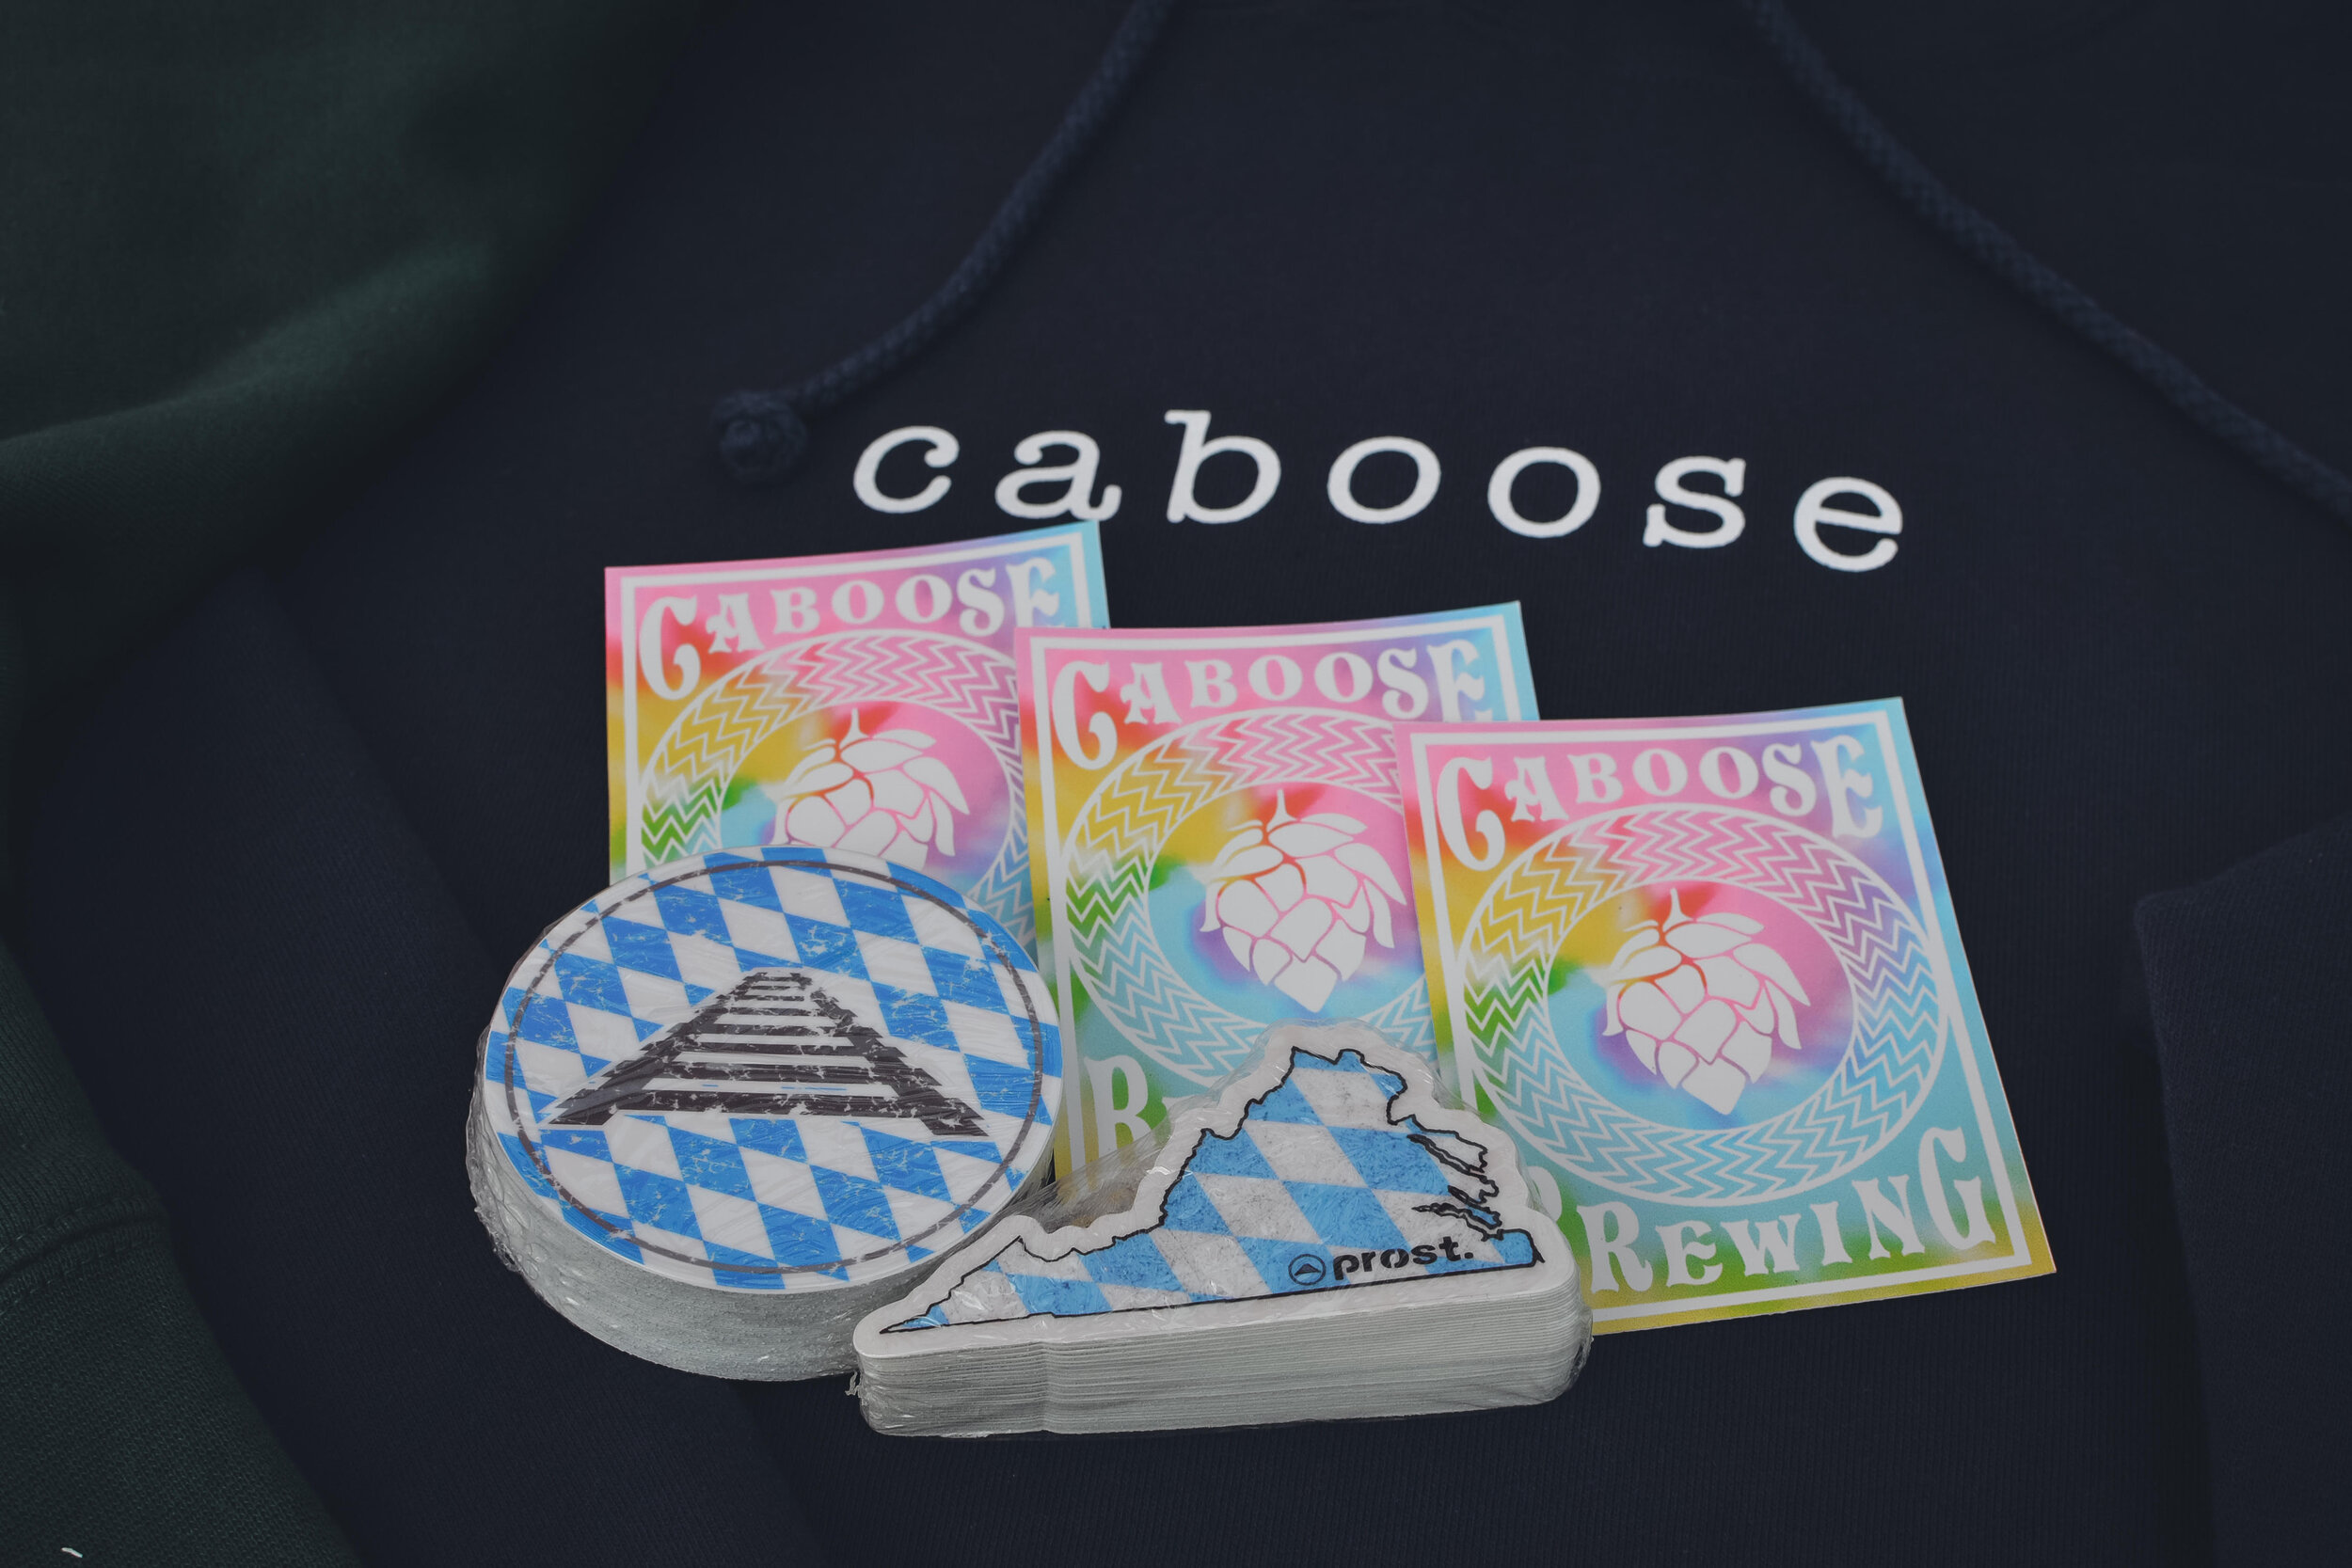 Caboose Stickers - $1.50